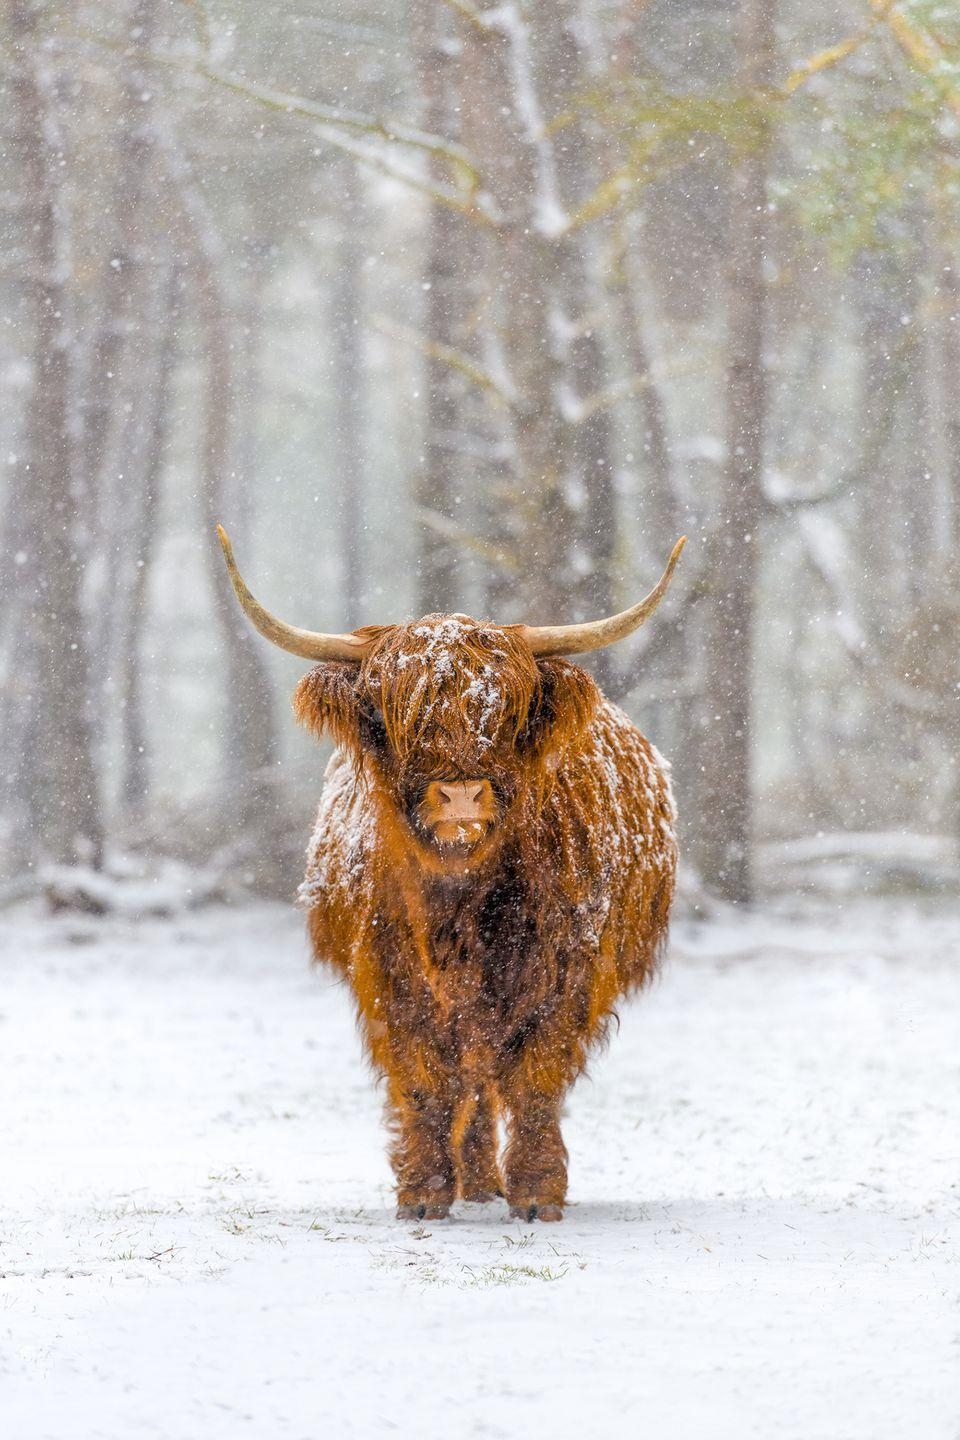 <p>An iconic image of Scotland, this snow-dusted Highland cow looks warm and protected. </p>